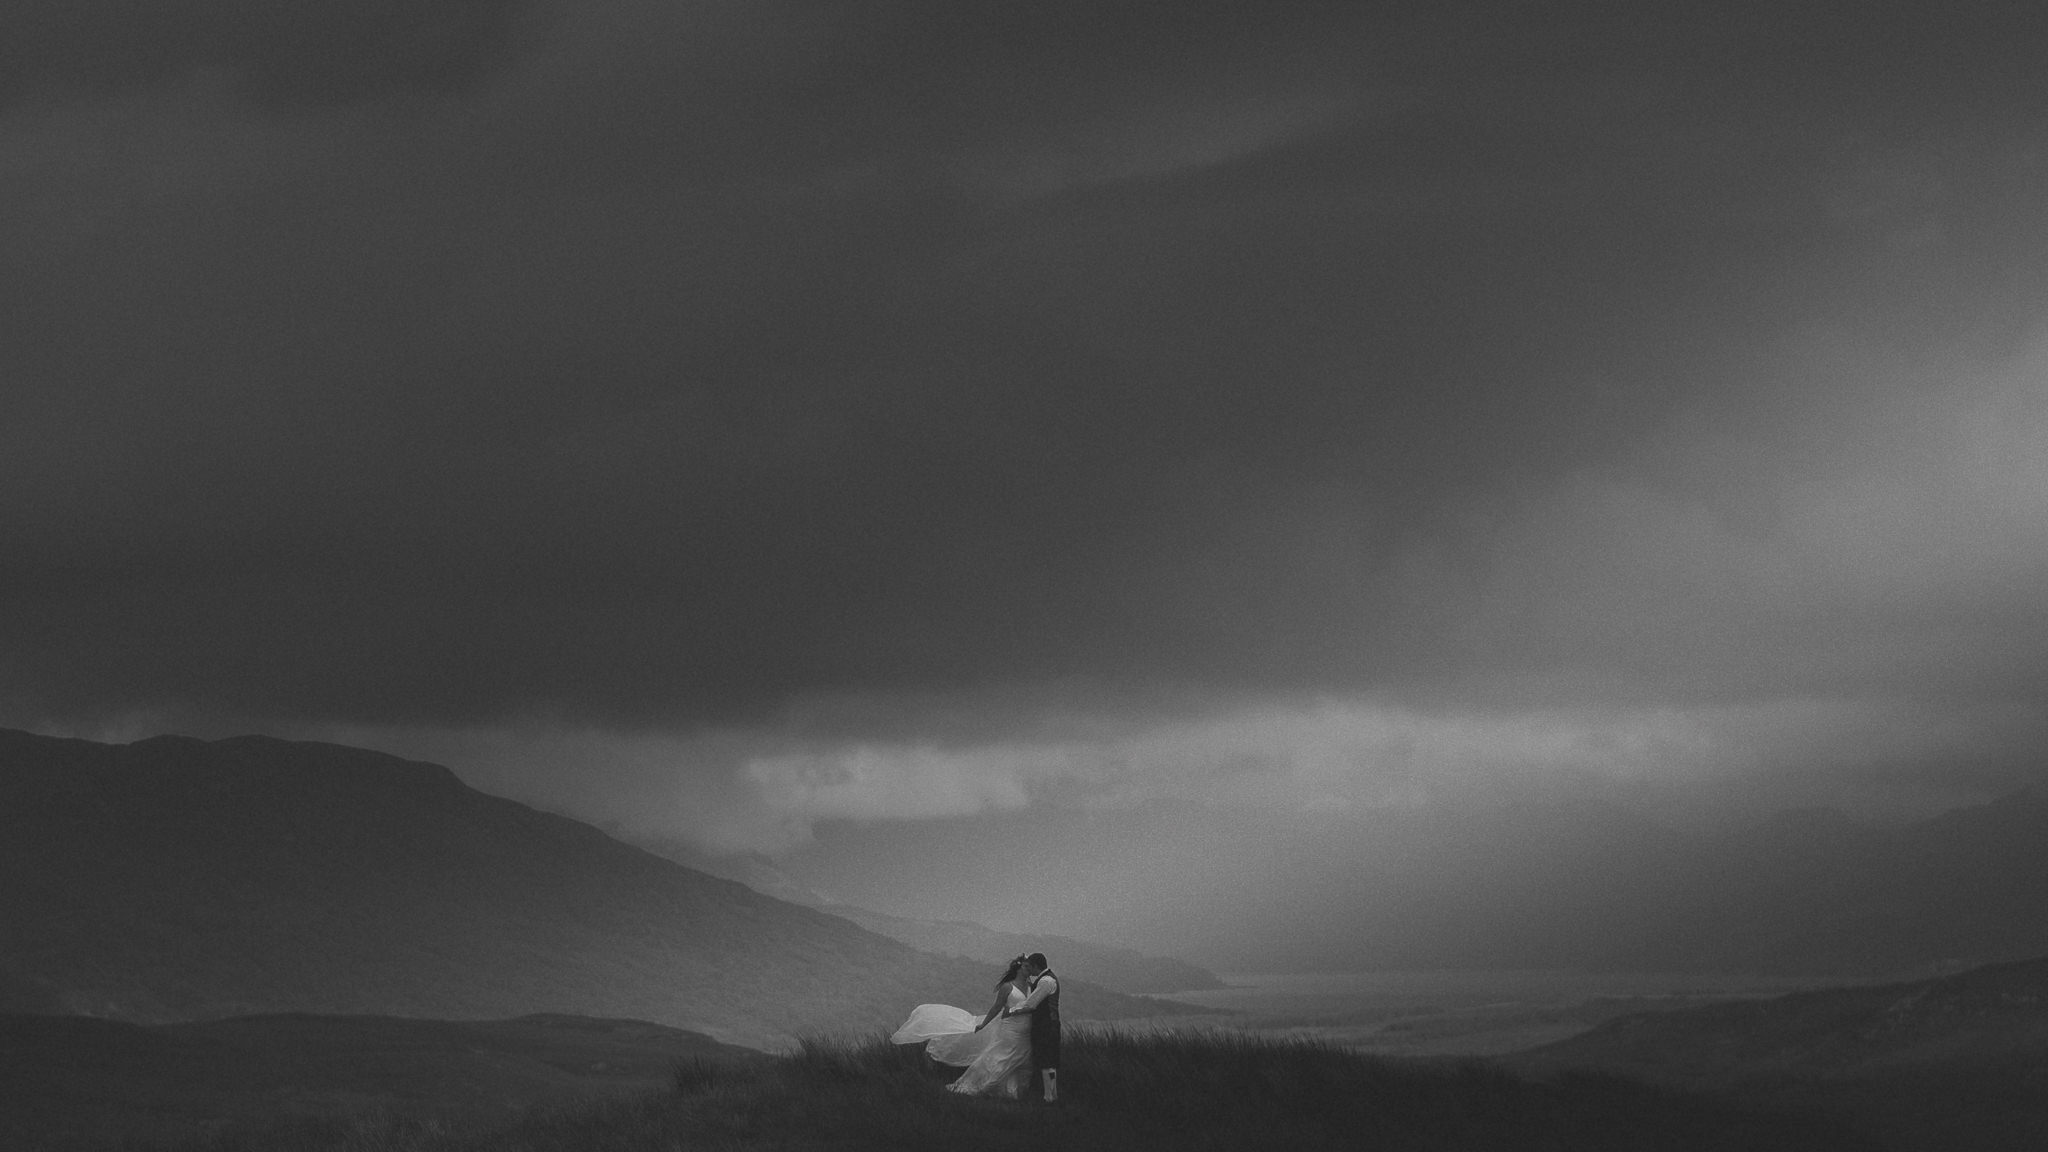 Fay + Chris | Skye Elopement Wedding Photographer